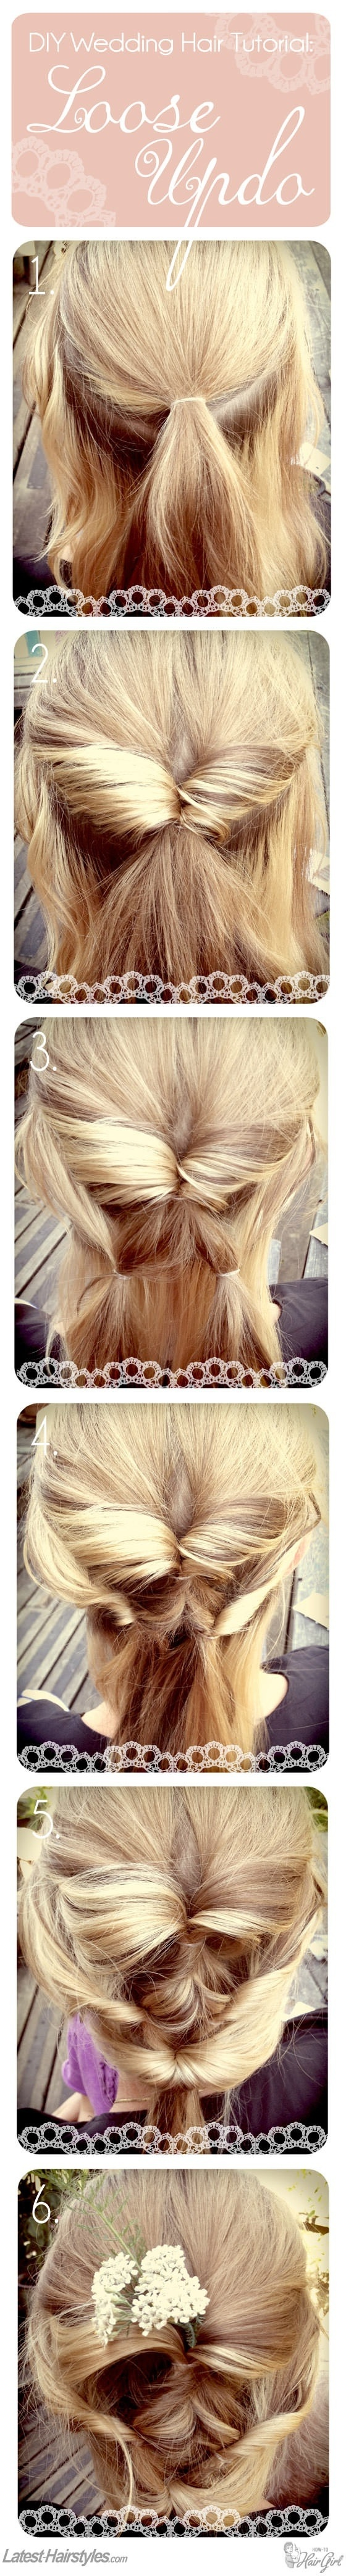 Beautiful hair steps.!